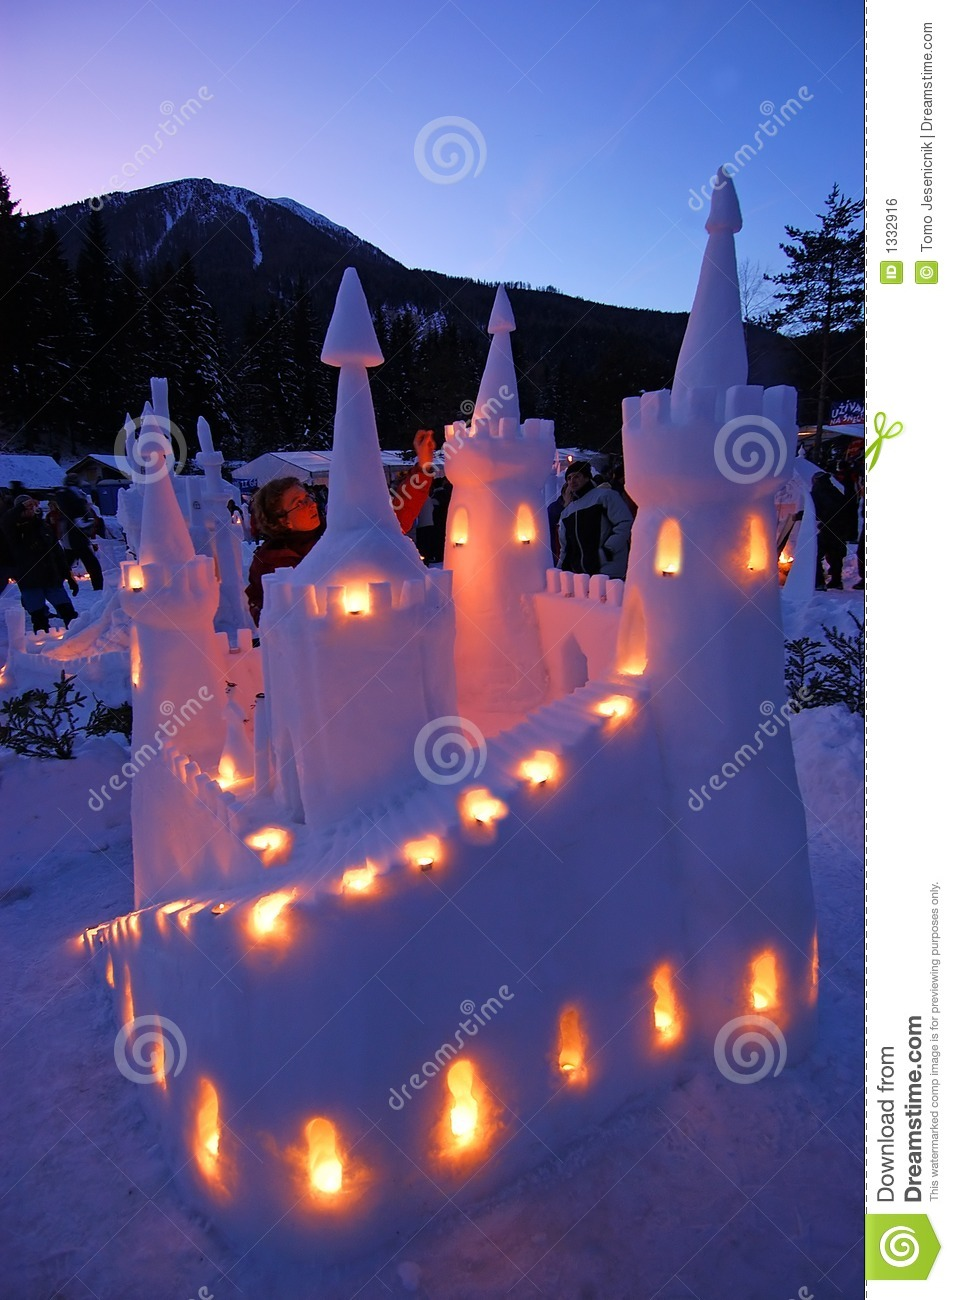 Snow Castle Lit By Candles And Twilight Royalty Free Stock